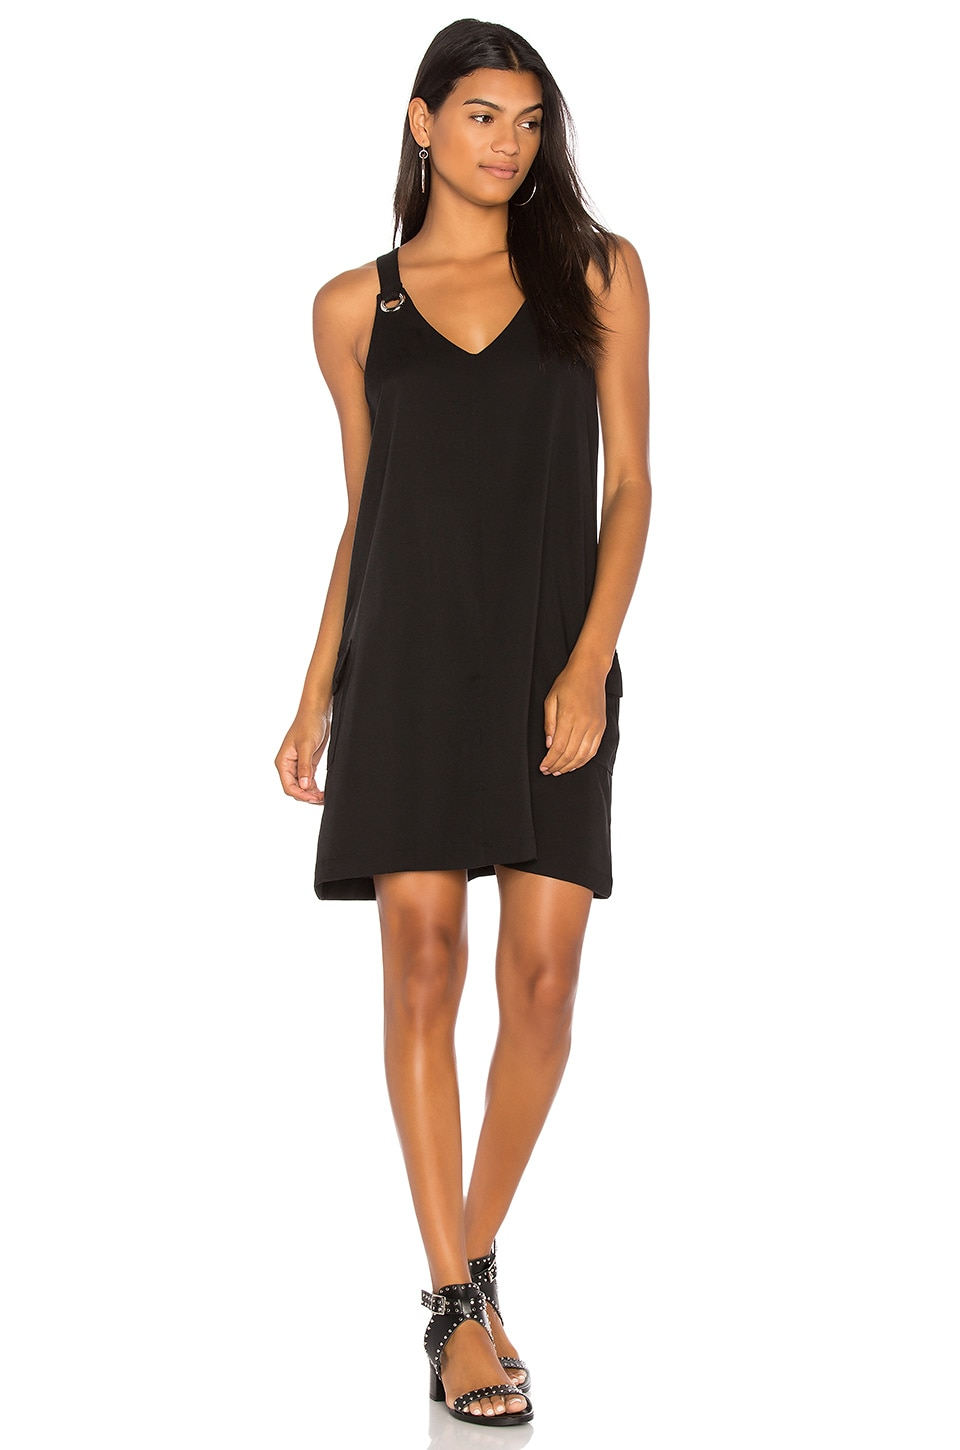 BLACK Grommet Tank Dress by Bobi